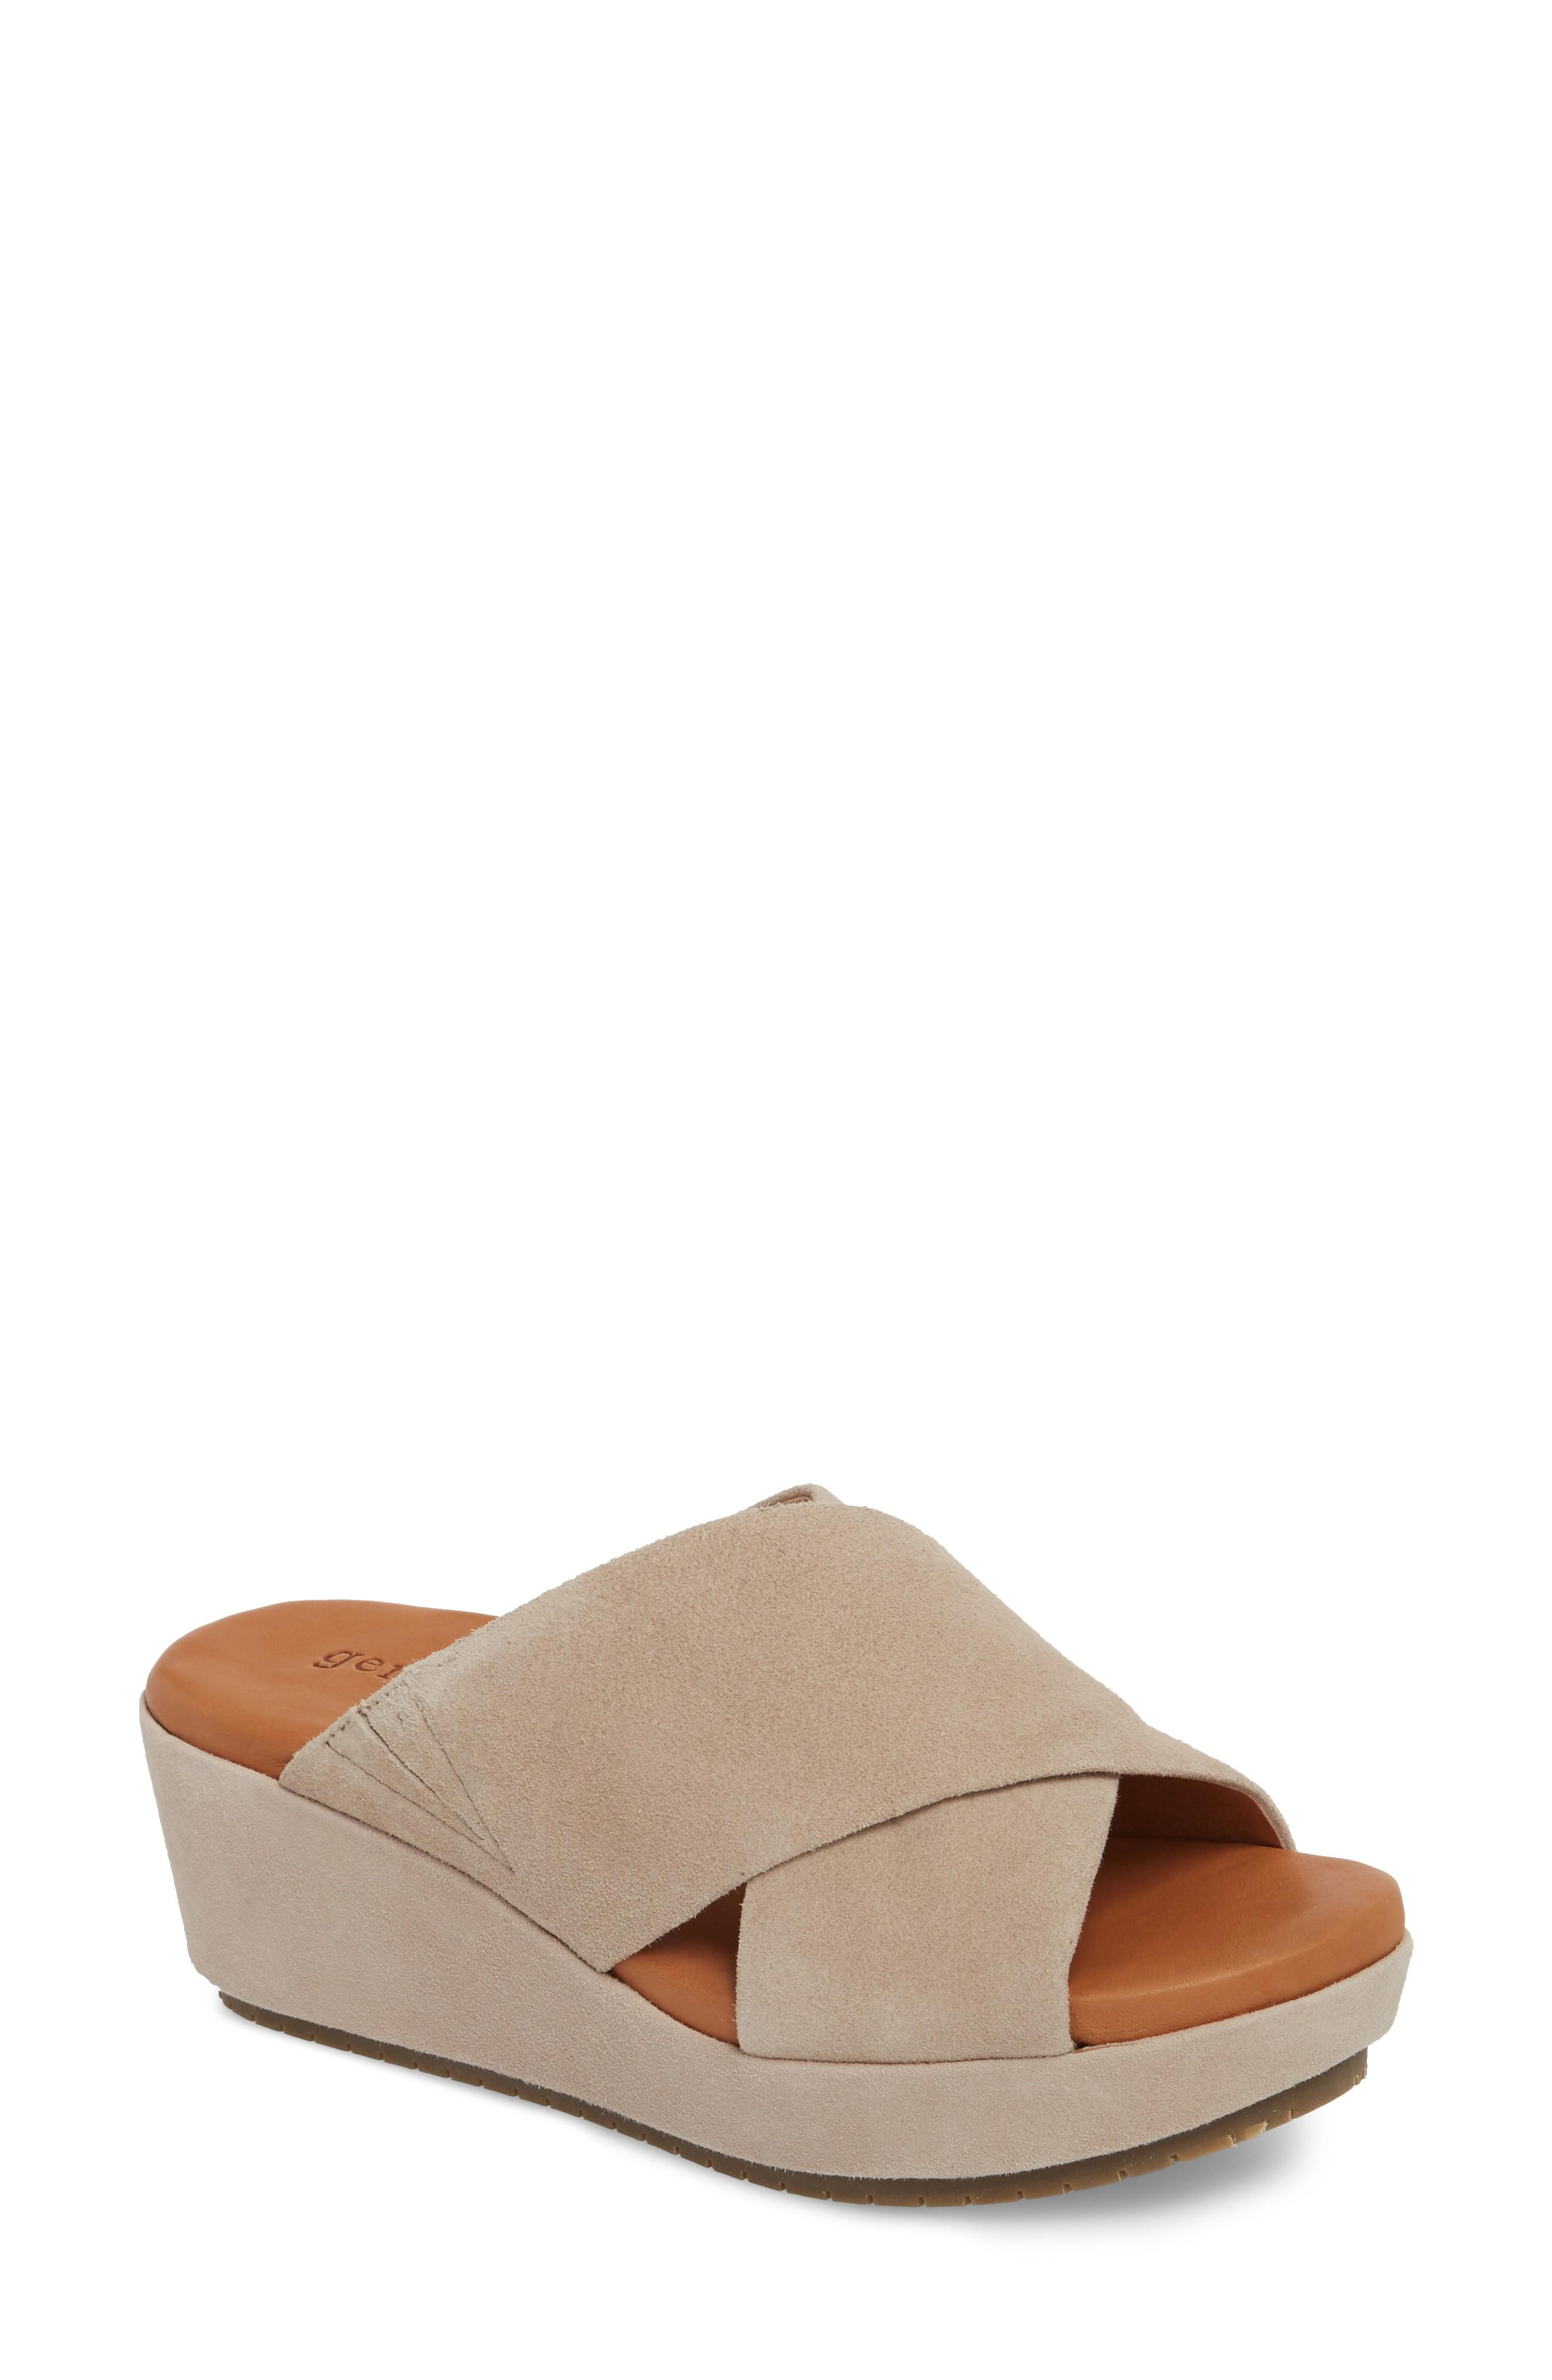 950f3d9f603d A tonal wedge and platform add just-right height to an versatile leather  slide. Style Name  Gentle Souls By Kenneth Cole Mikenzie Sandal (Women).